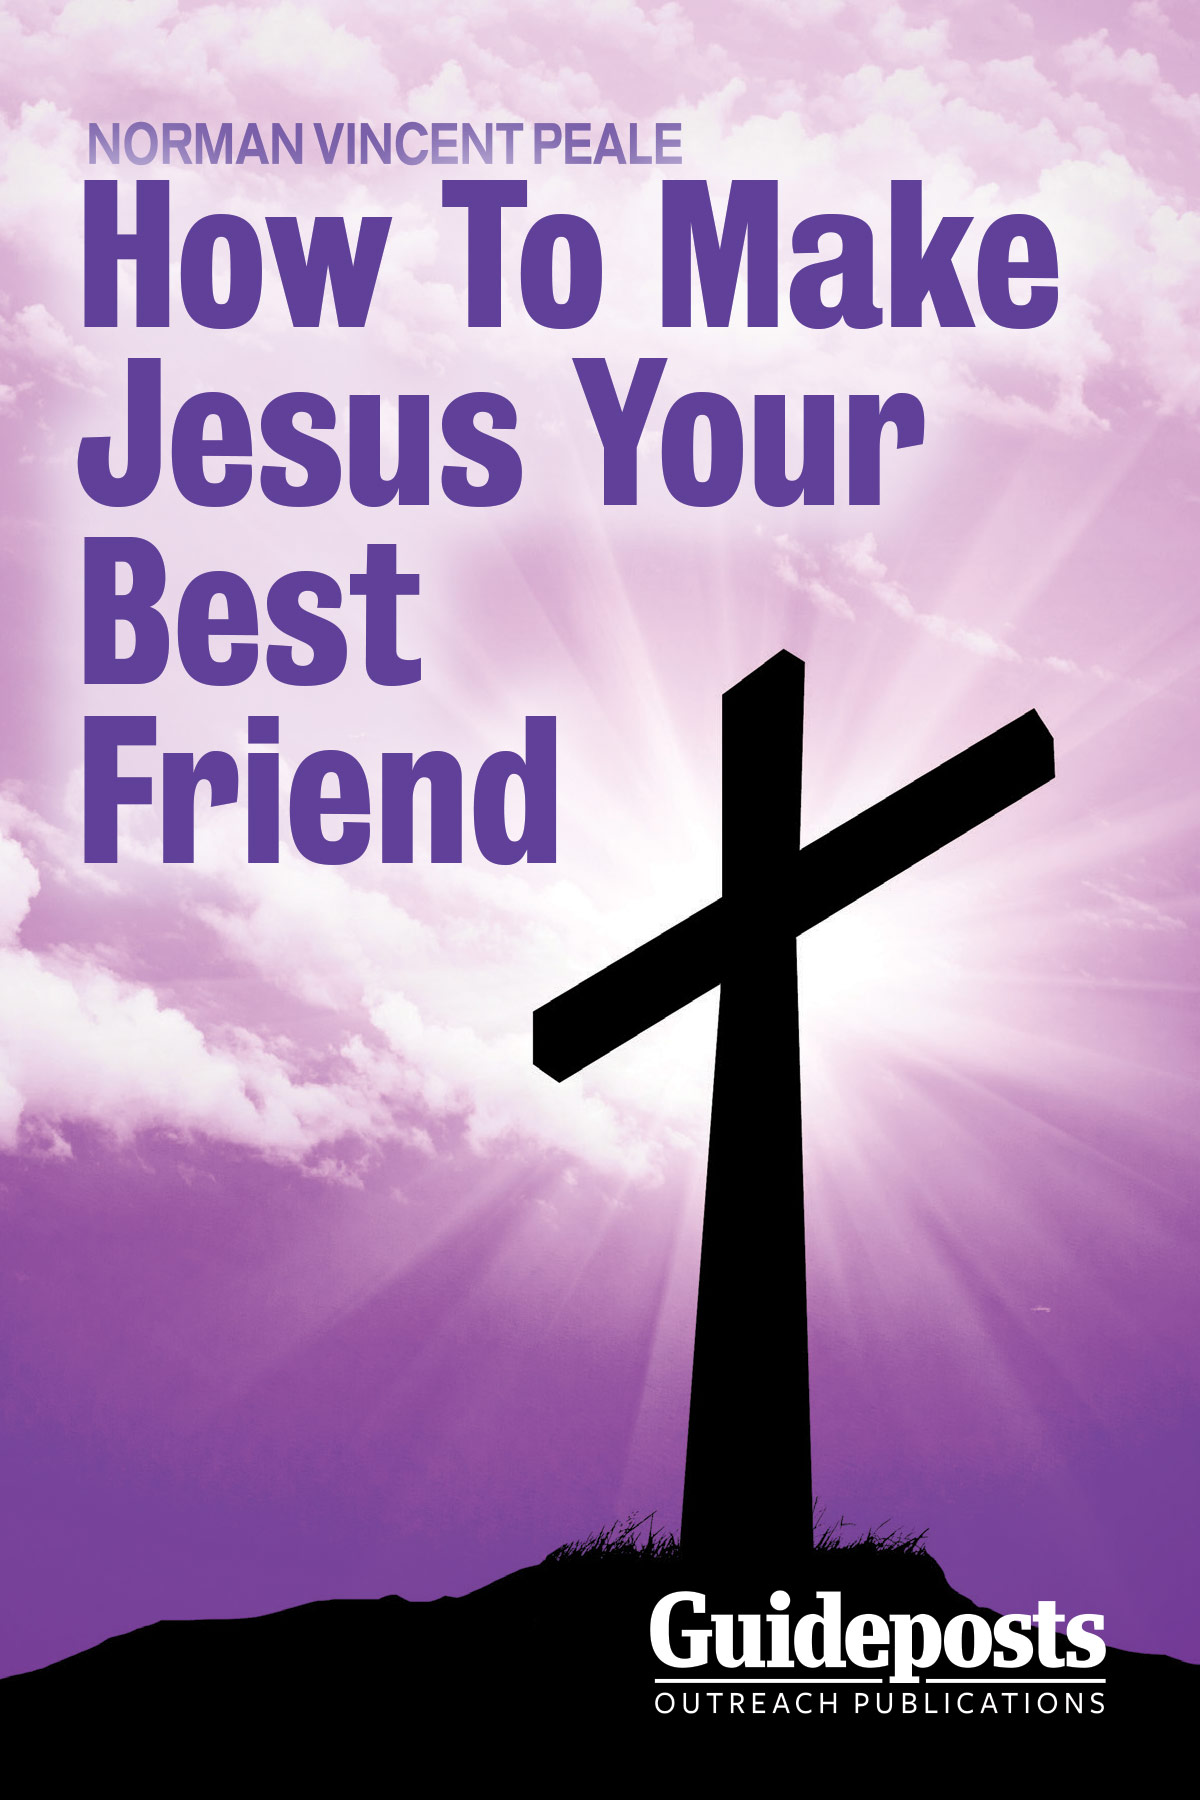 How To Make Jesus Your Best Friend